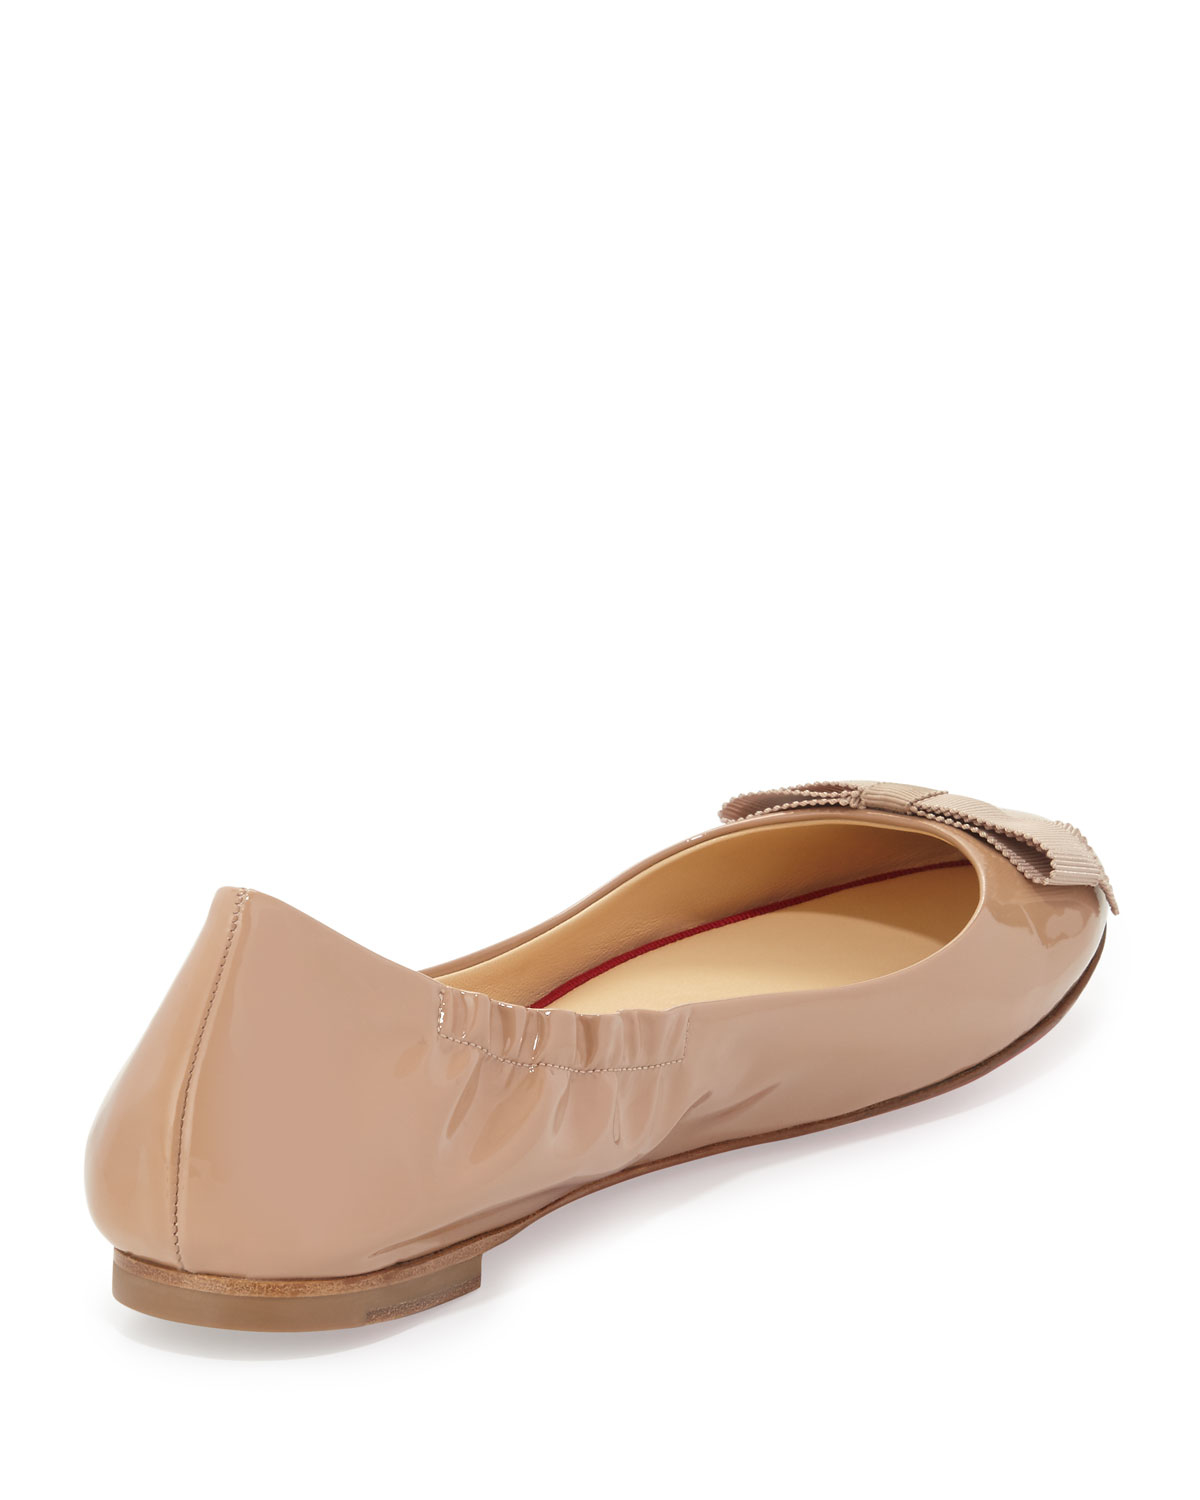 fa0f550048c6 Lyst - Christian Louboutin Gloriana Patent-Leather Ballet Flats in Natural